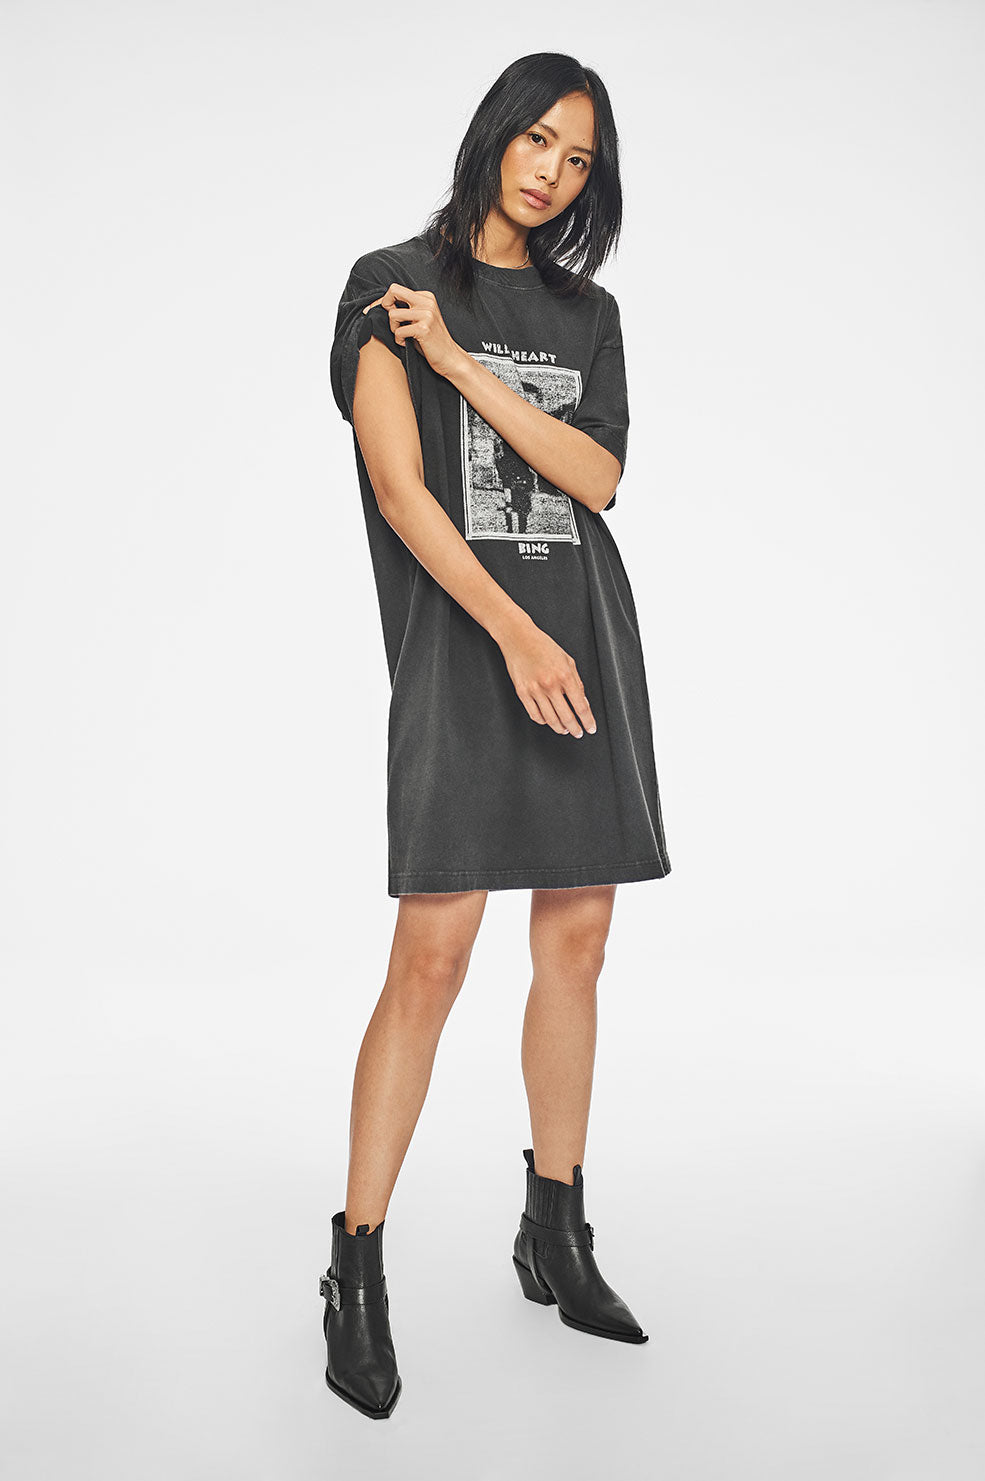 ANINE BING Harley Mohawk Tee Dress - Washed Black